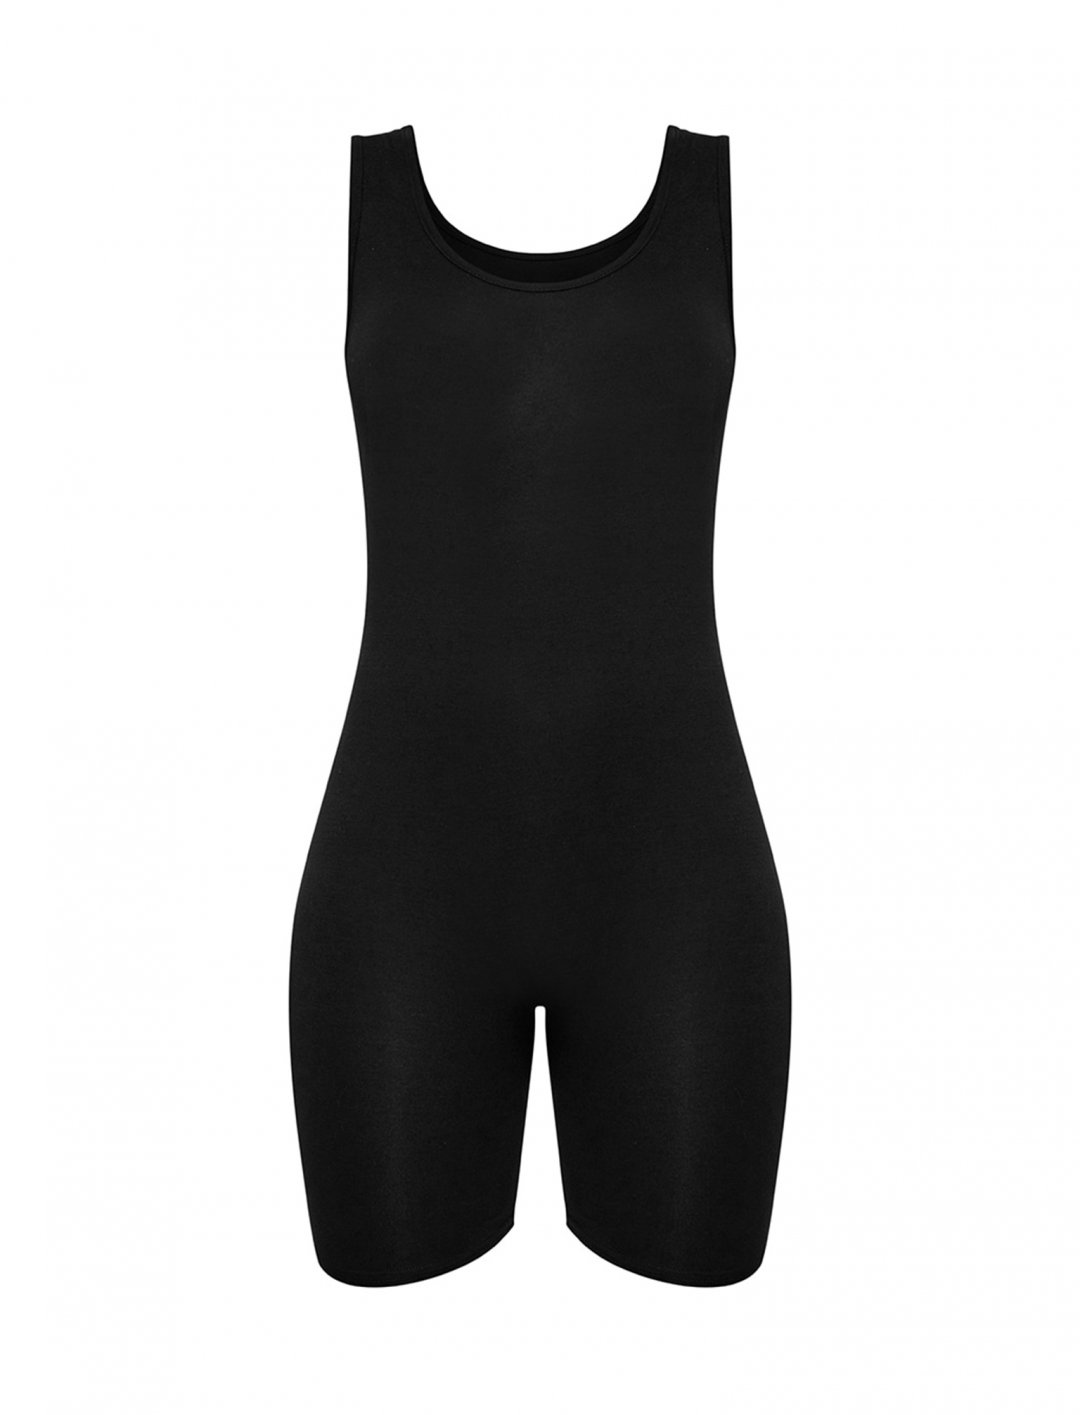 "Lashanti Black Unitard {""id"":5,""product_section_id"":1,""name"":""Clothing"",""order"":5} Pretty Little Thing"